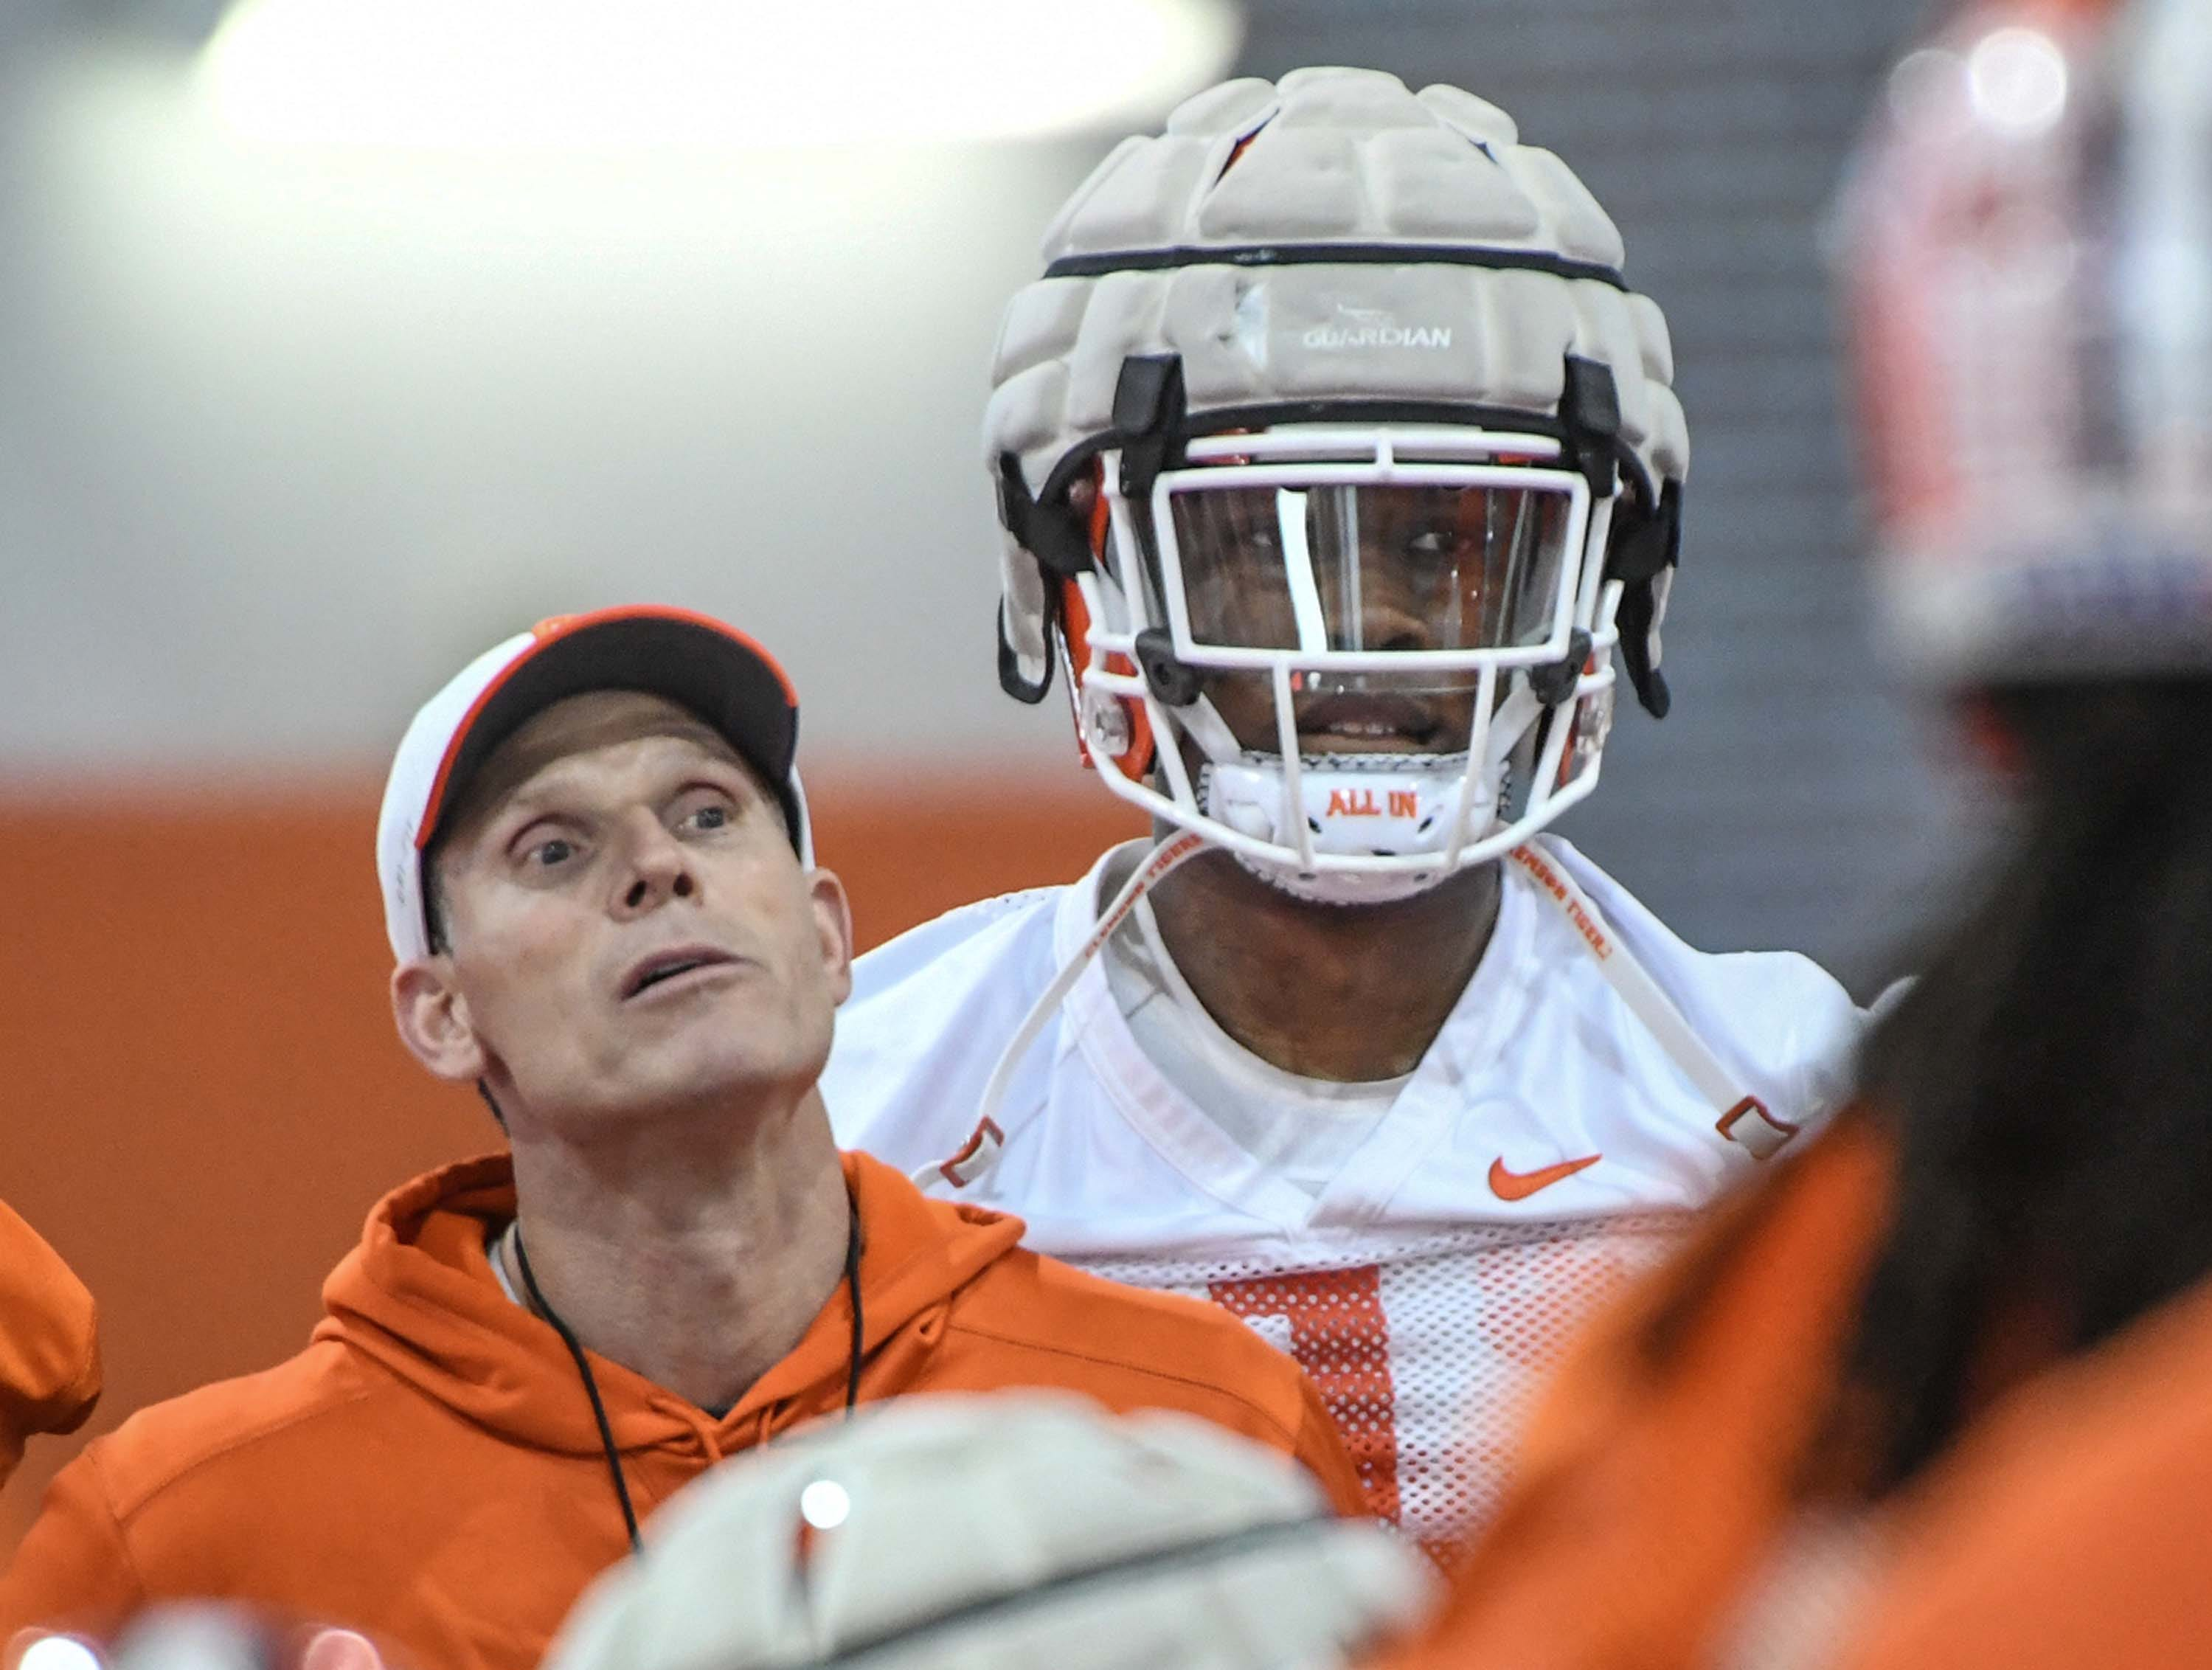 Clemson defensive coordinator Brent Venables and Clemson defensive end K.J. Henry (1) during the first practice at the Clemson Indoor Practice Facility in Clemson Wednesday, February 27, 2019.